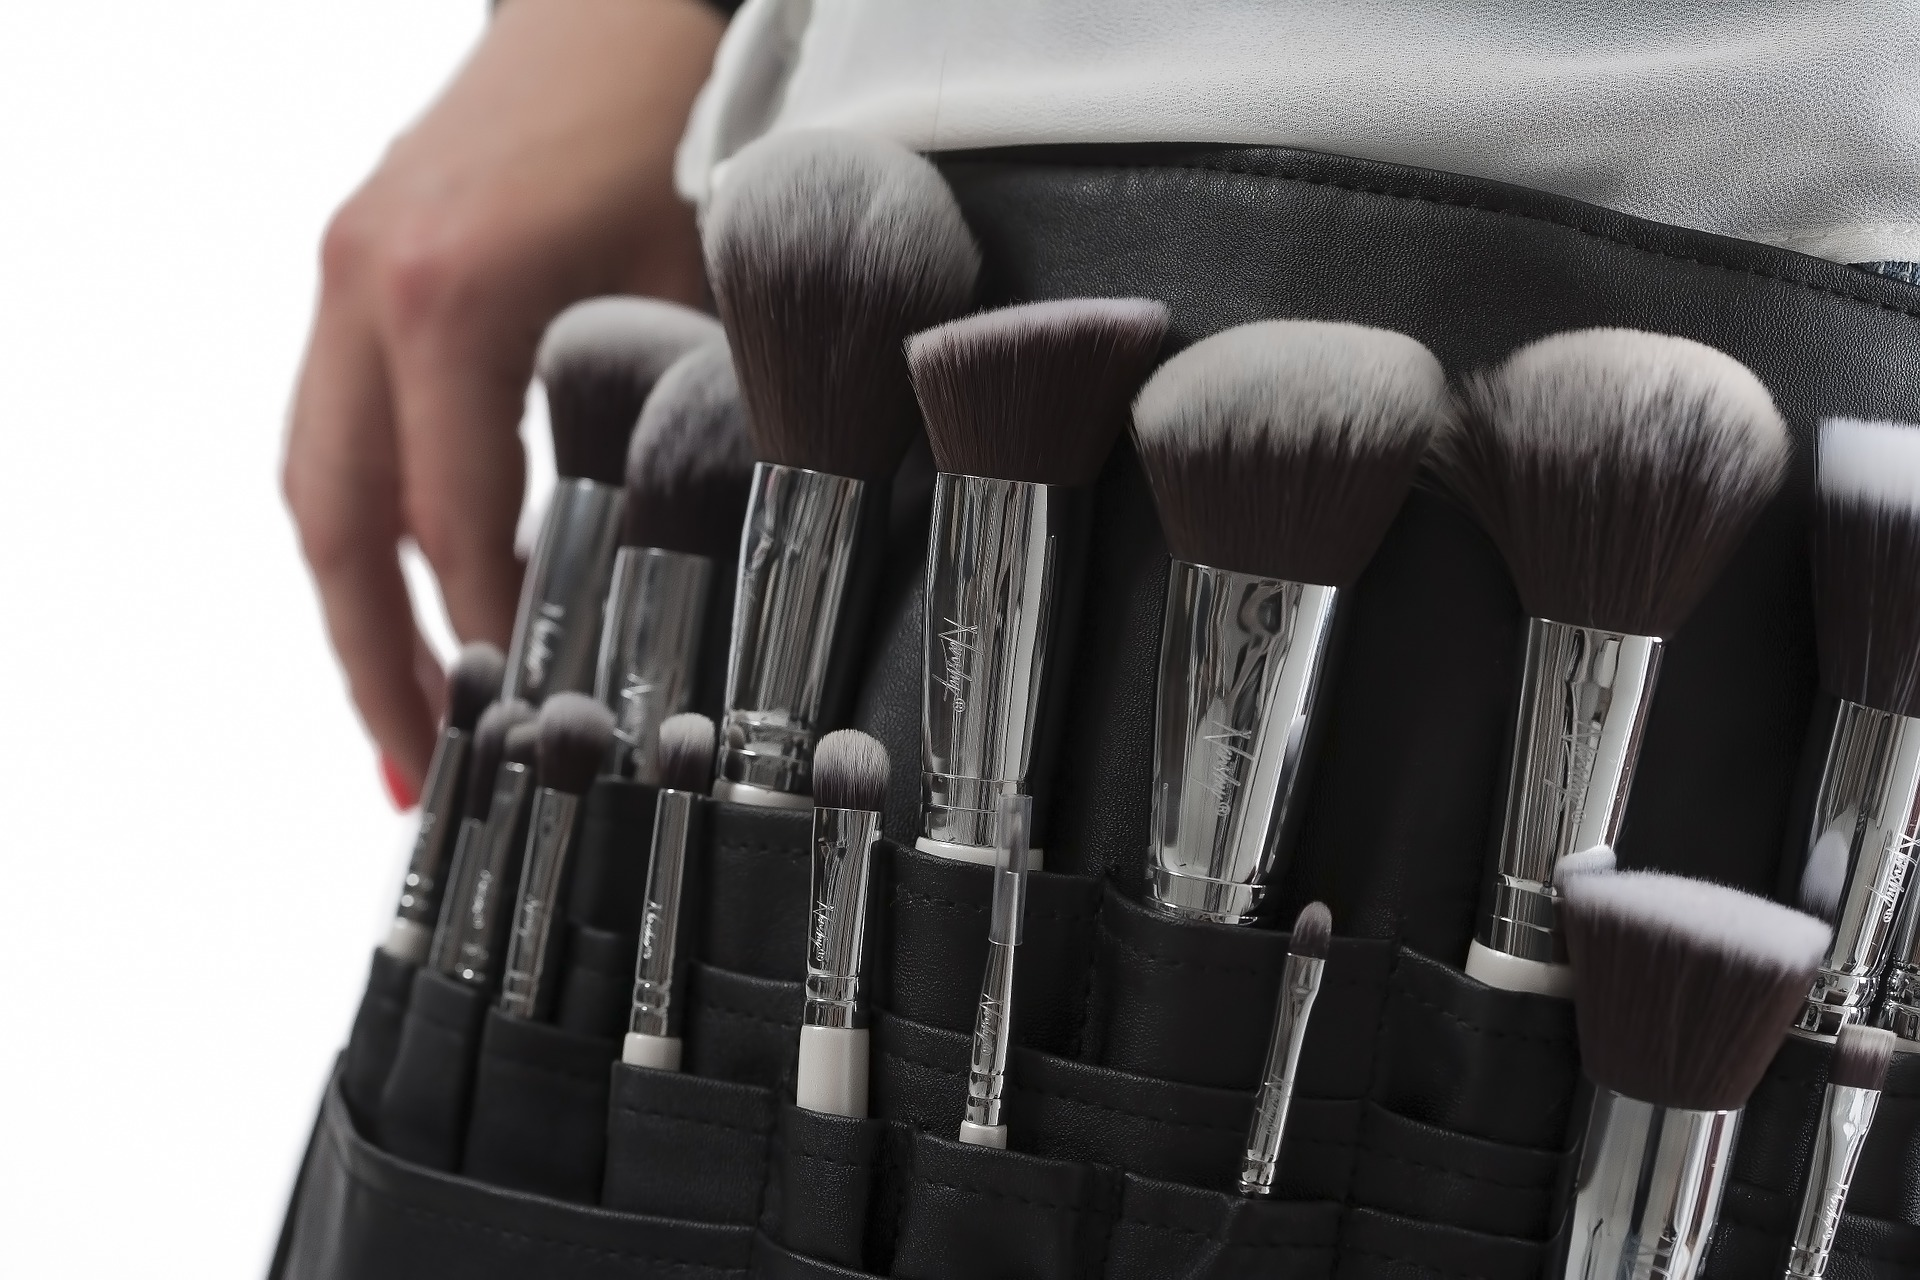 makeup-brushes-824710_1920